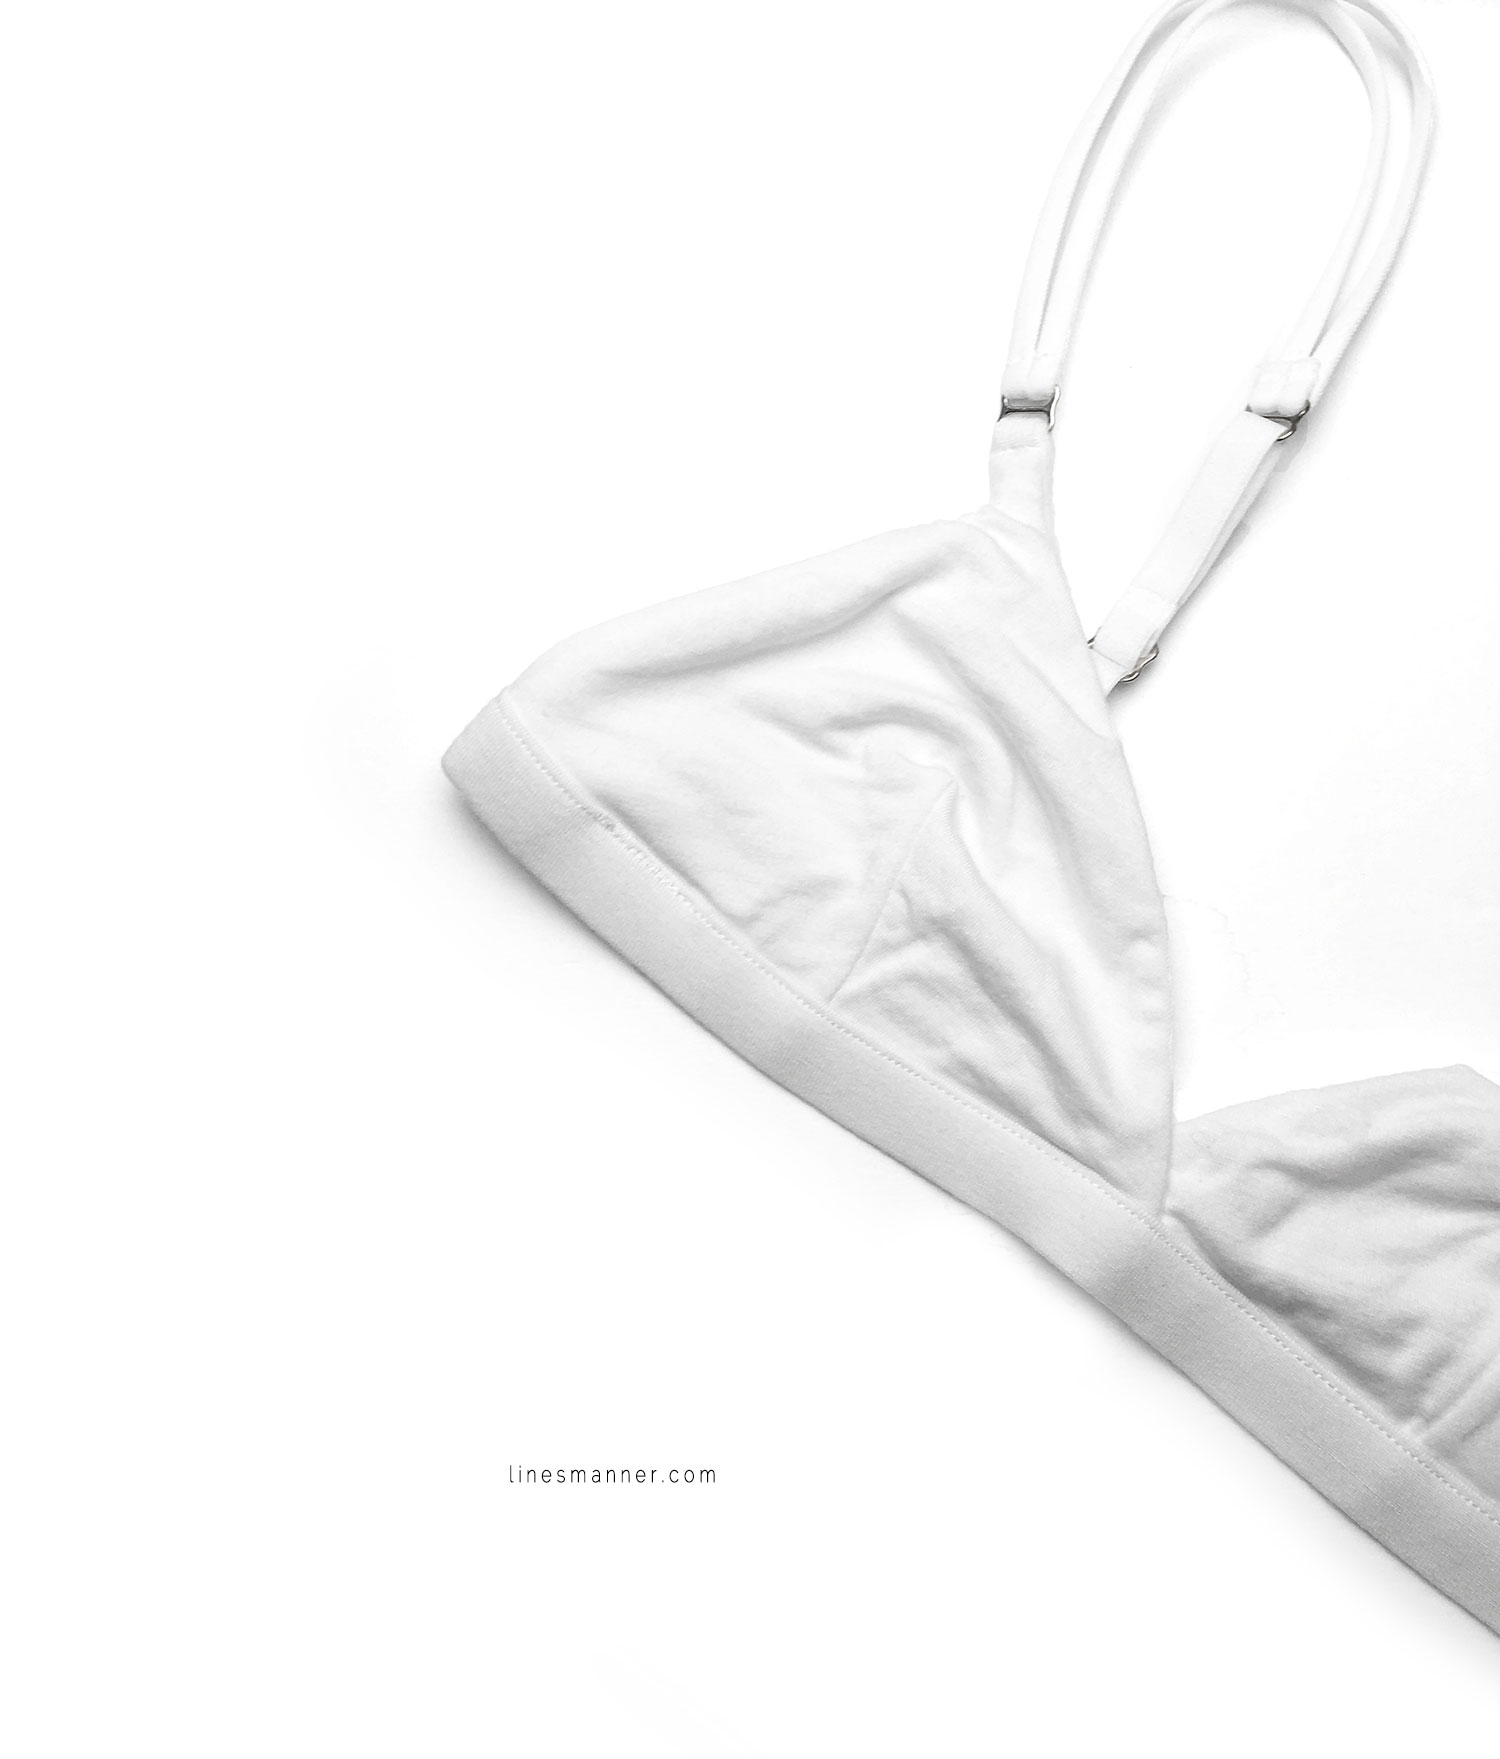 Lines-Manner-Simplicity-Sustainable-Quality-Less_is_More-Eco_friendly-Fashion-Underwear-Woron-Modal-Neutrals-6